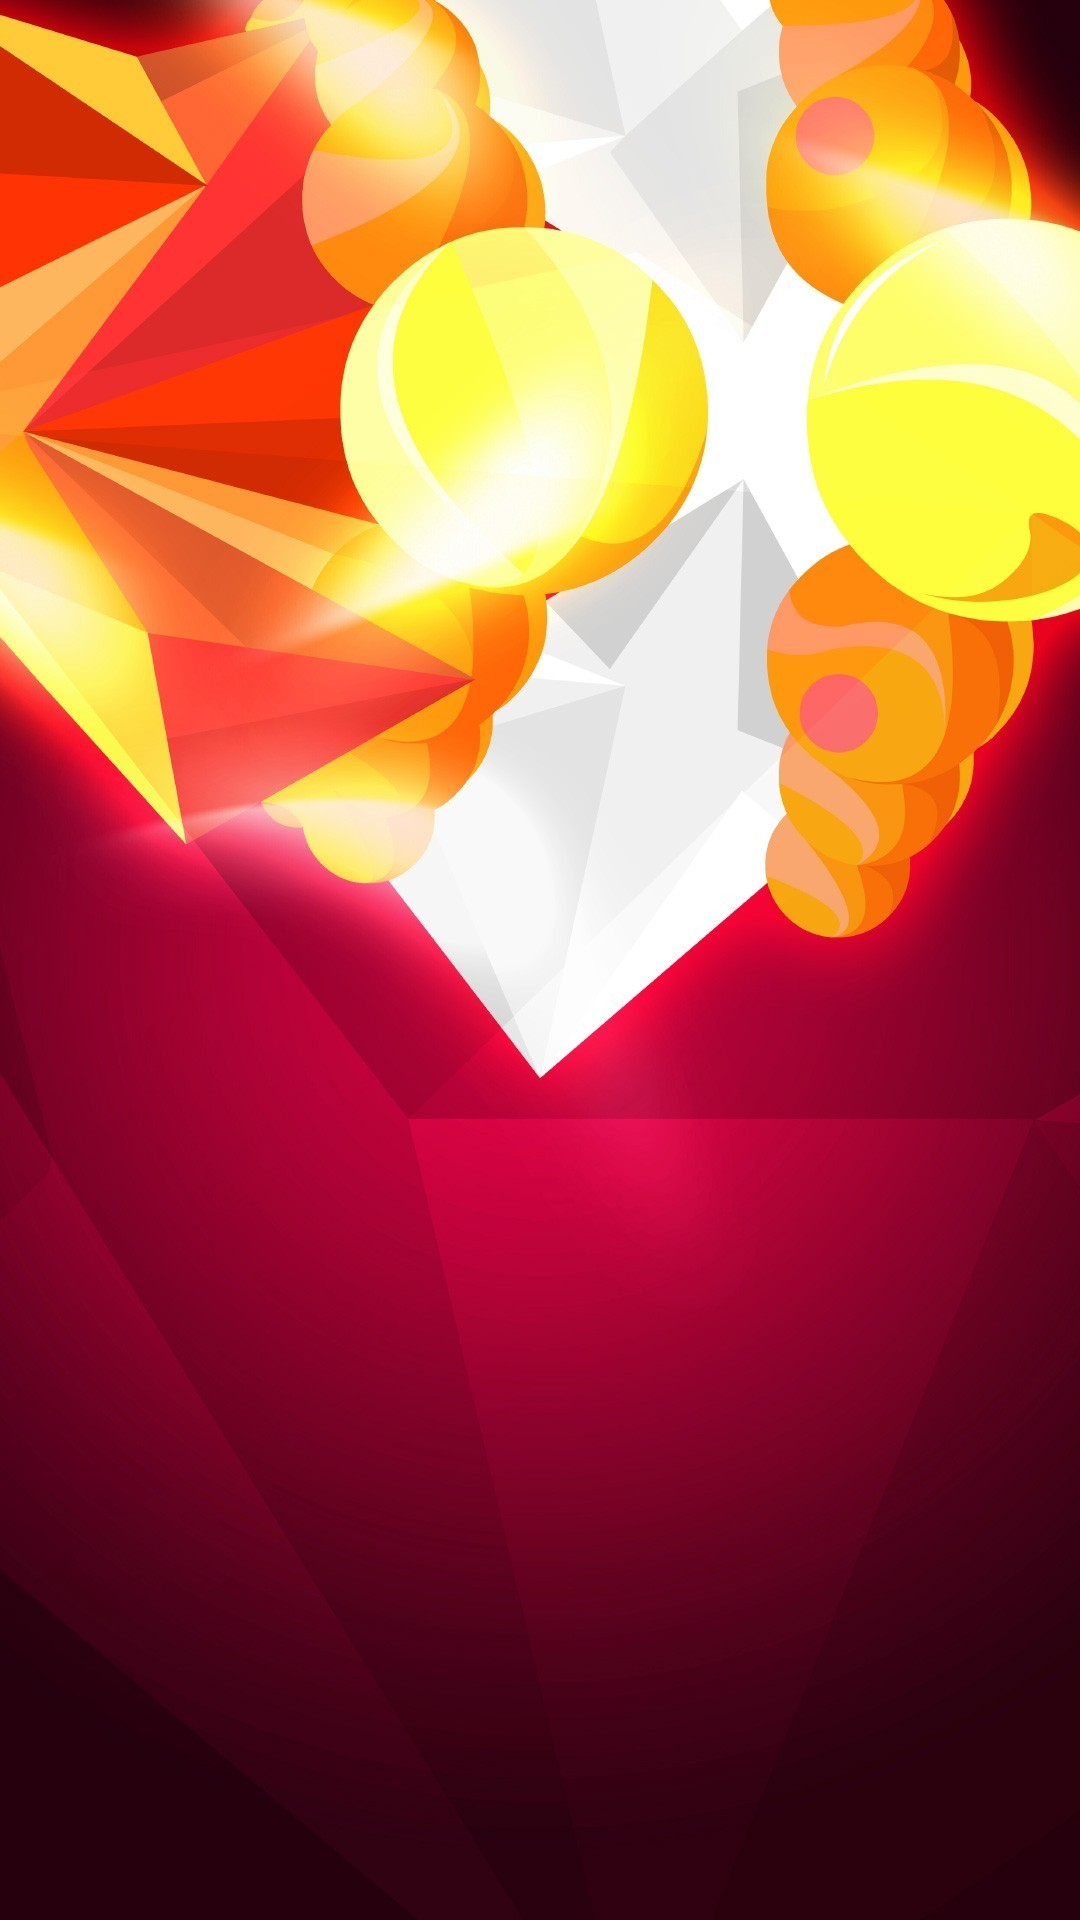 Abstract Orange Crystals Android Wallpaper …